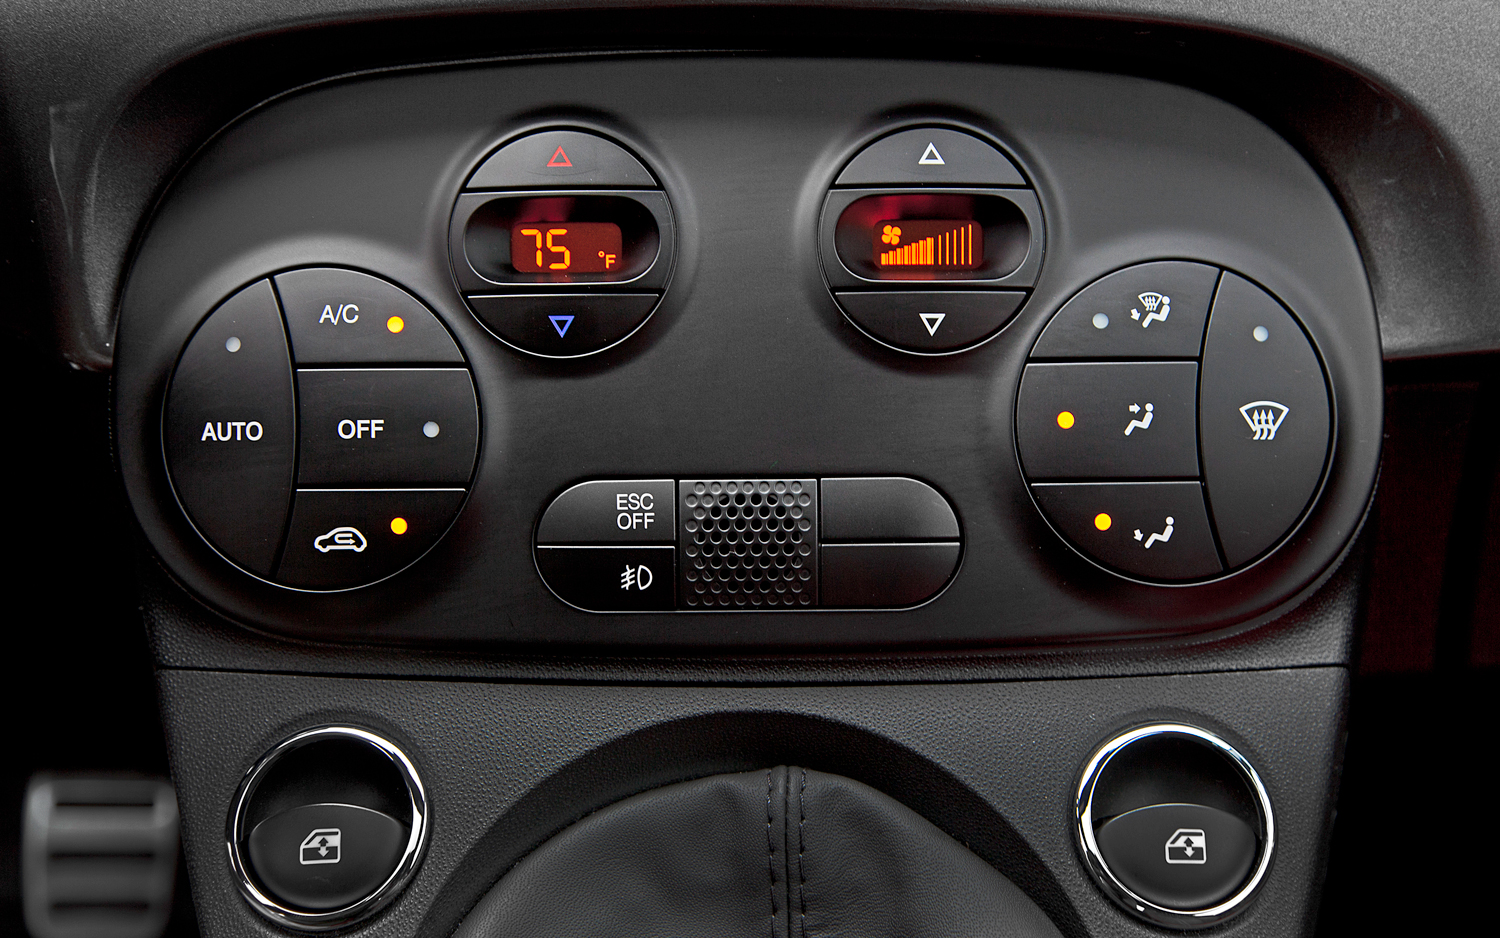 Car & Truck Parts > Air Conditioning & Heat > A/C & Heater Controls